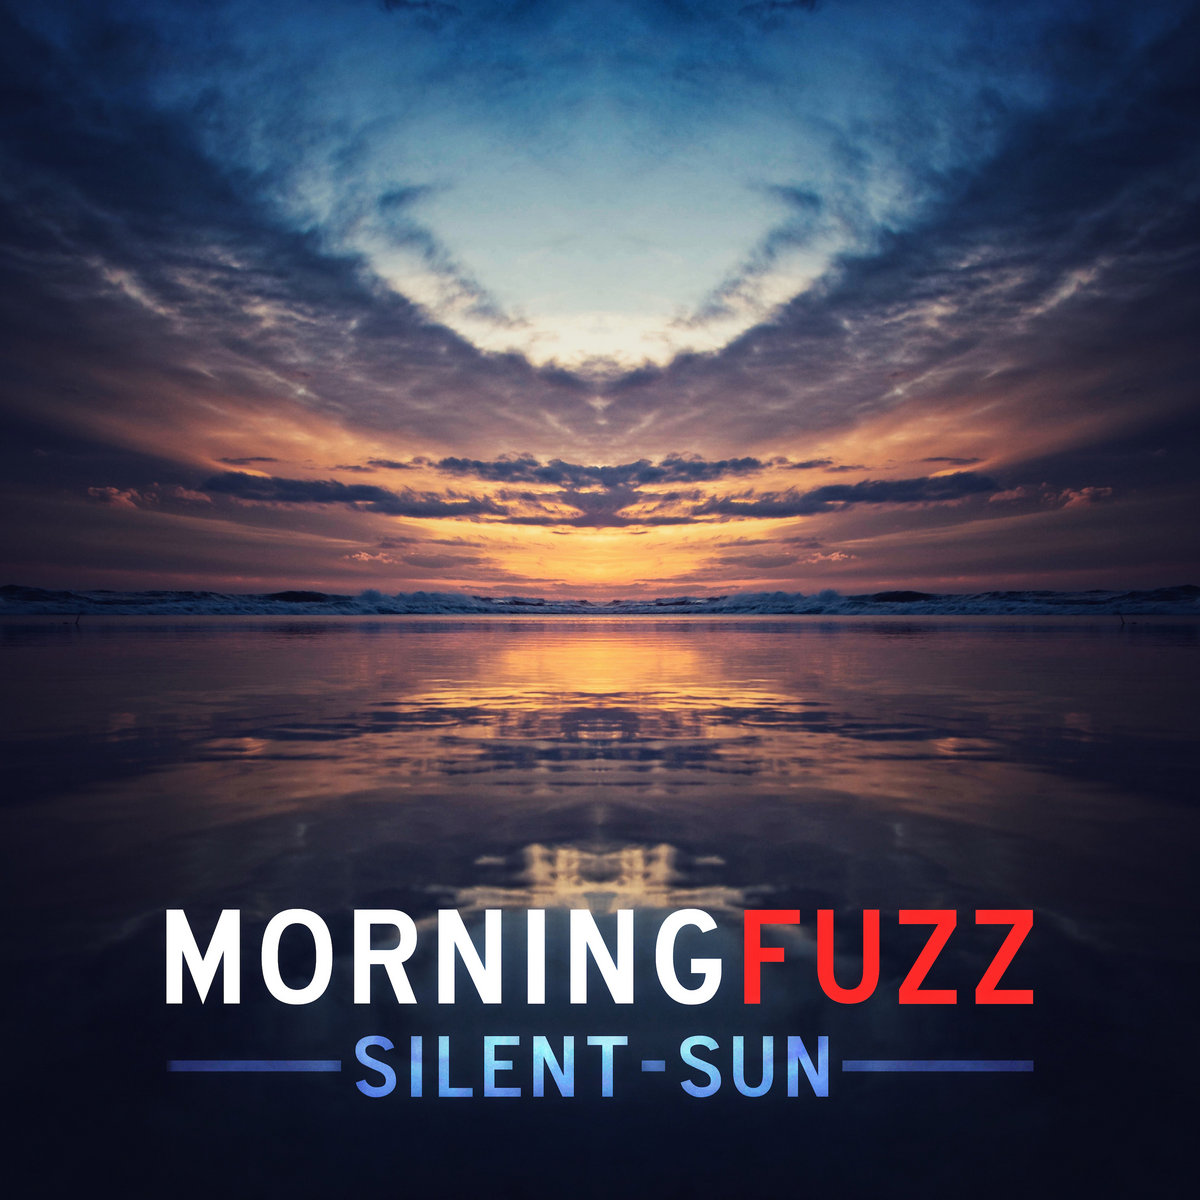 Silent Sun by Morning Fuzz